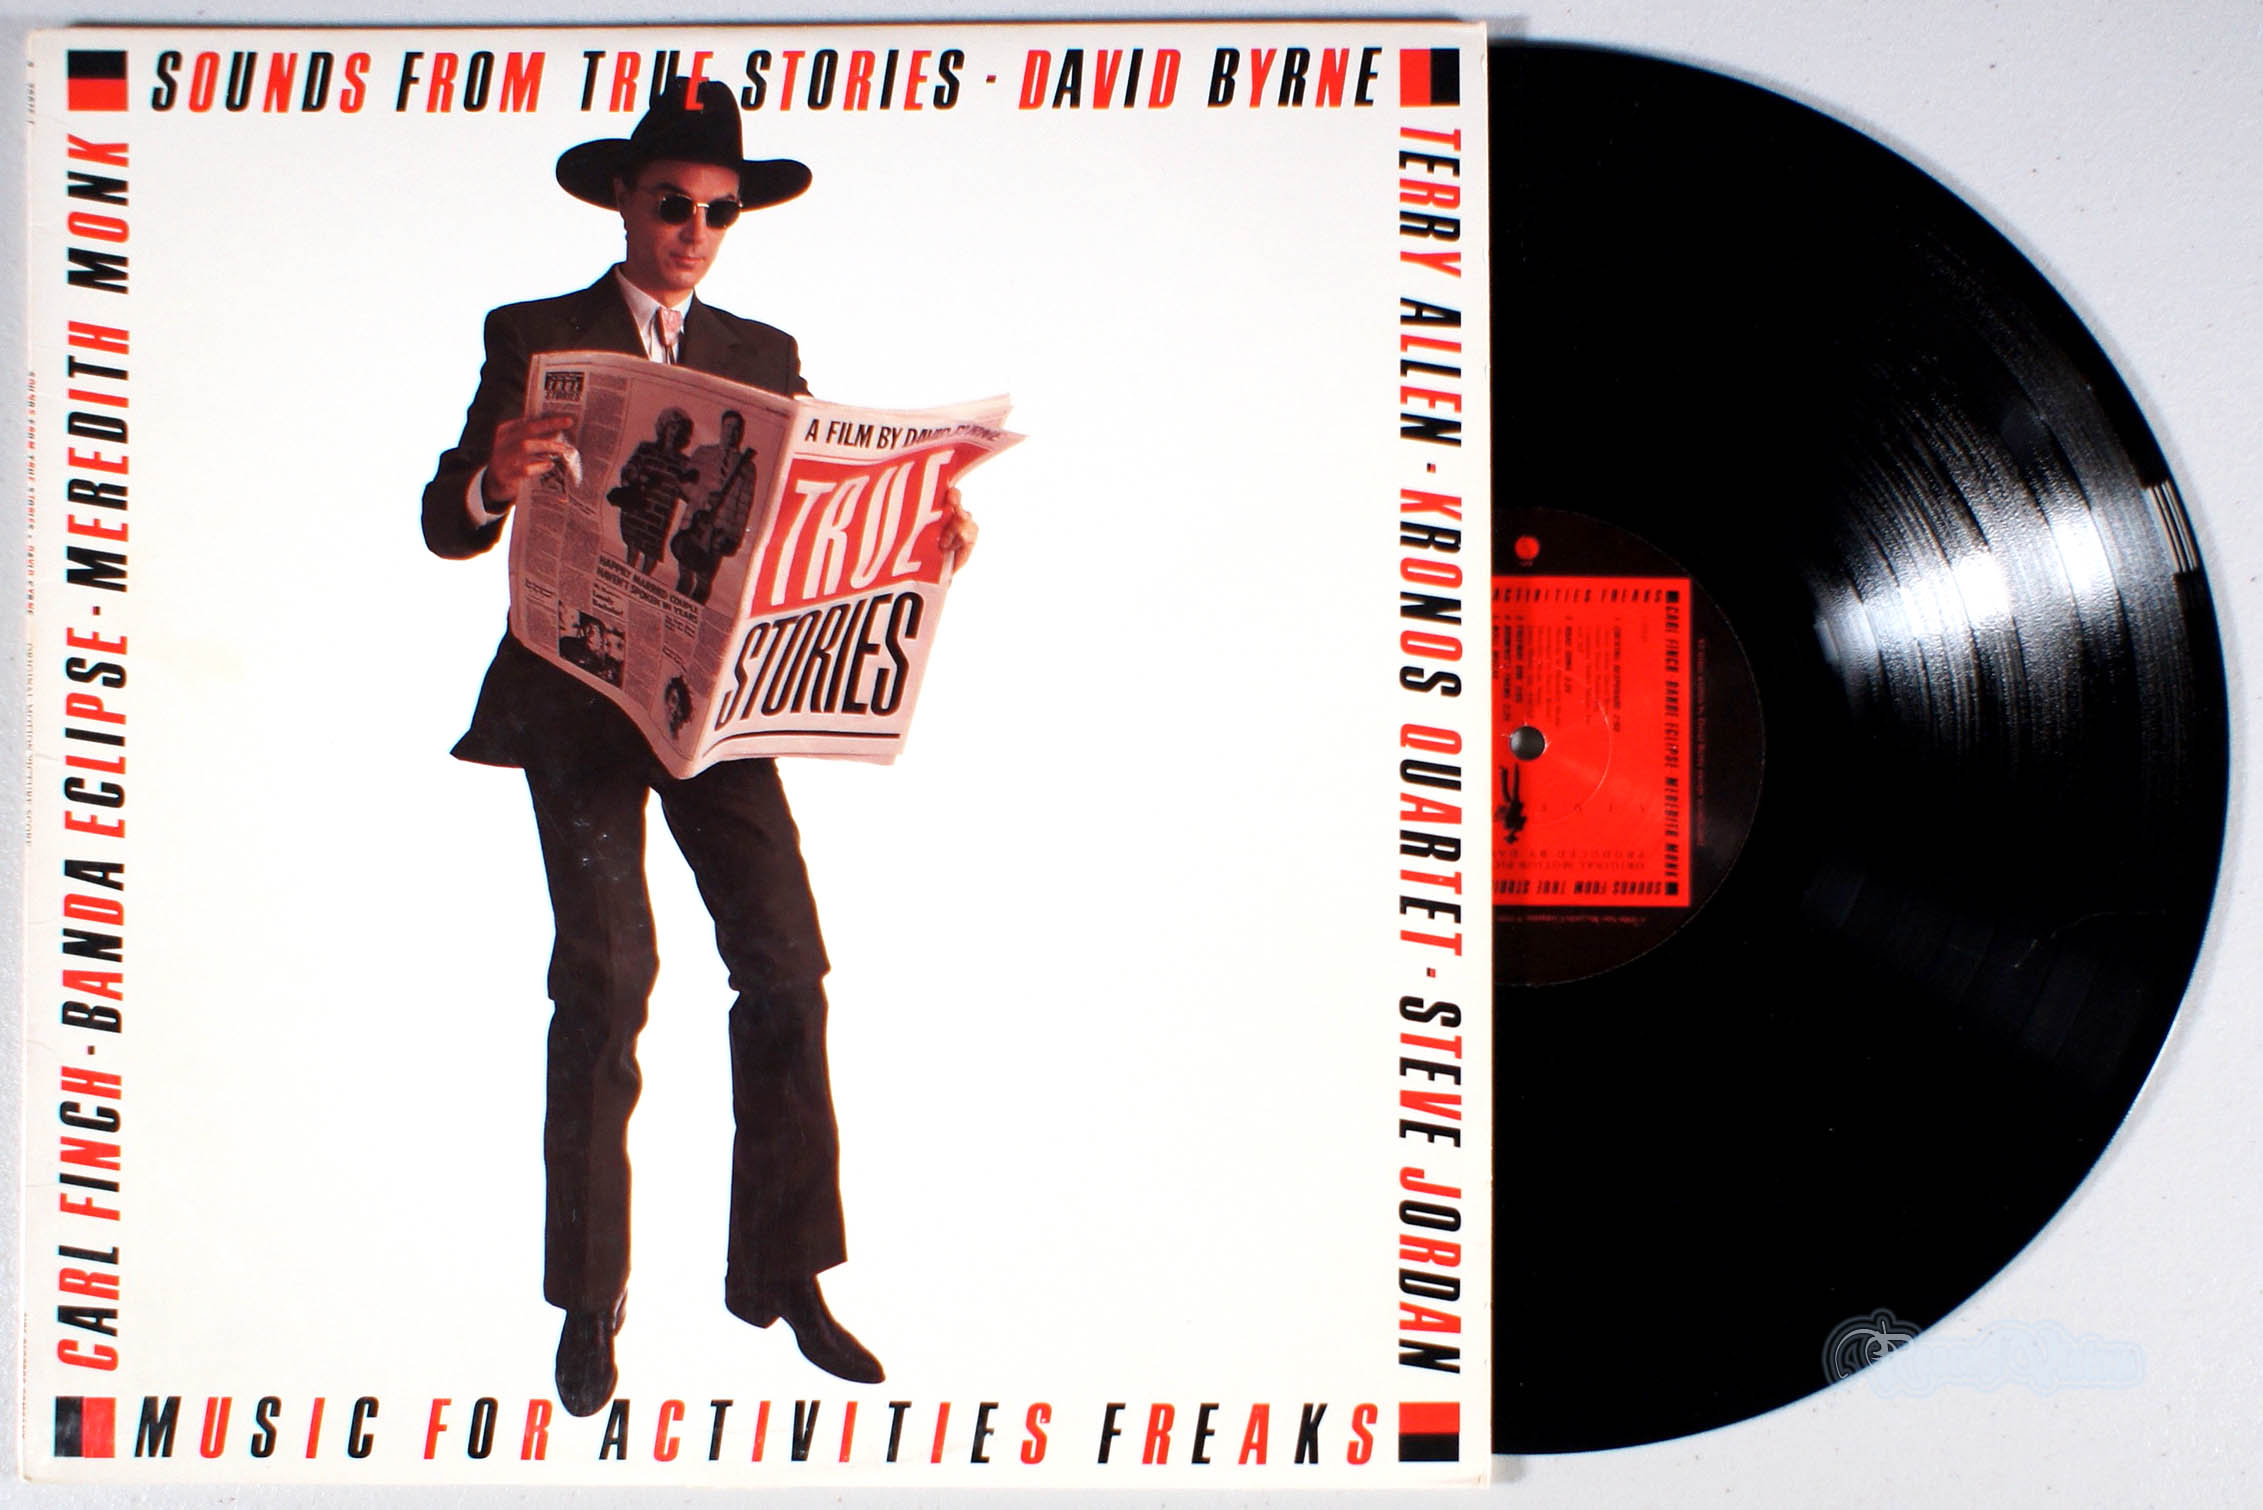 DAVID BYRNE - Sounds From True Stories - 33T